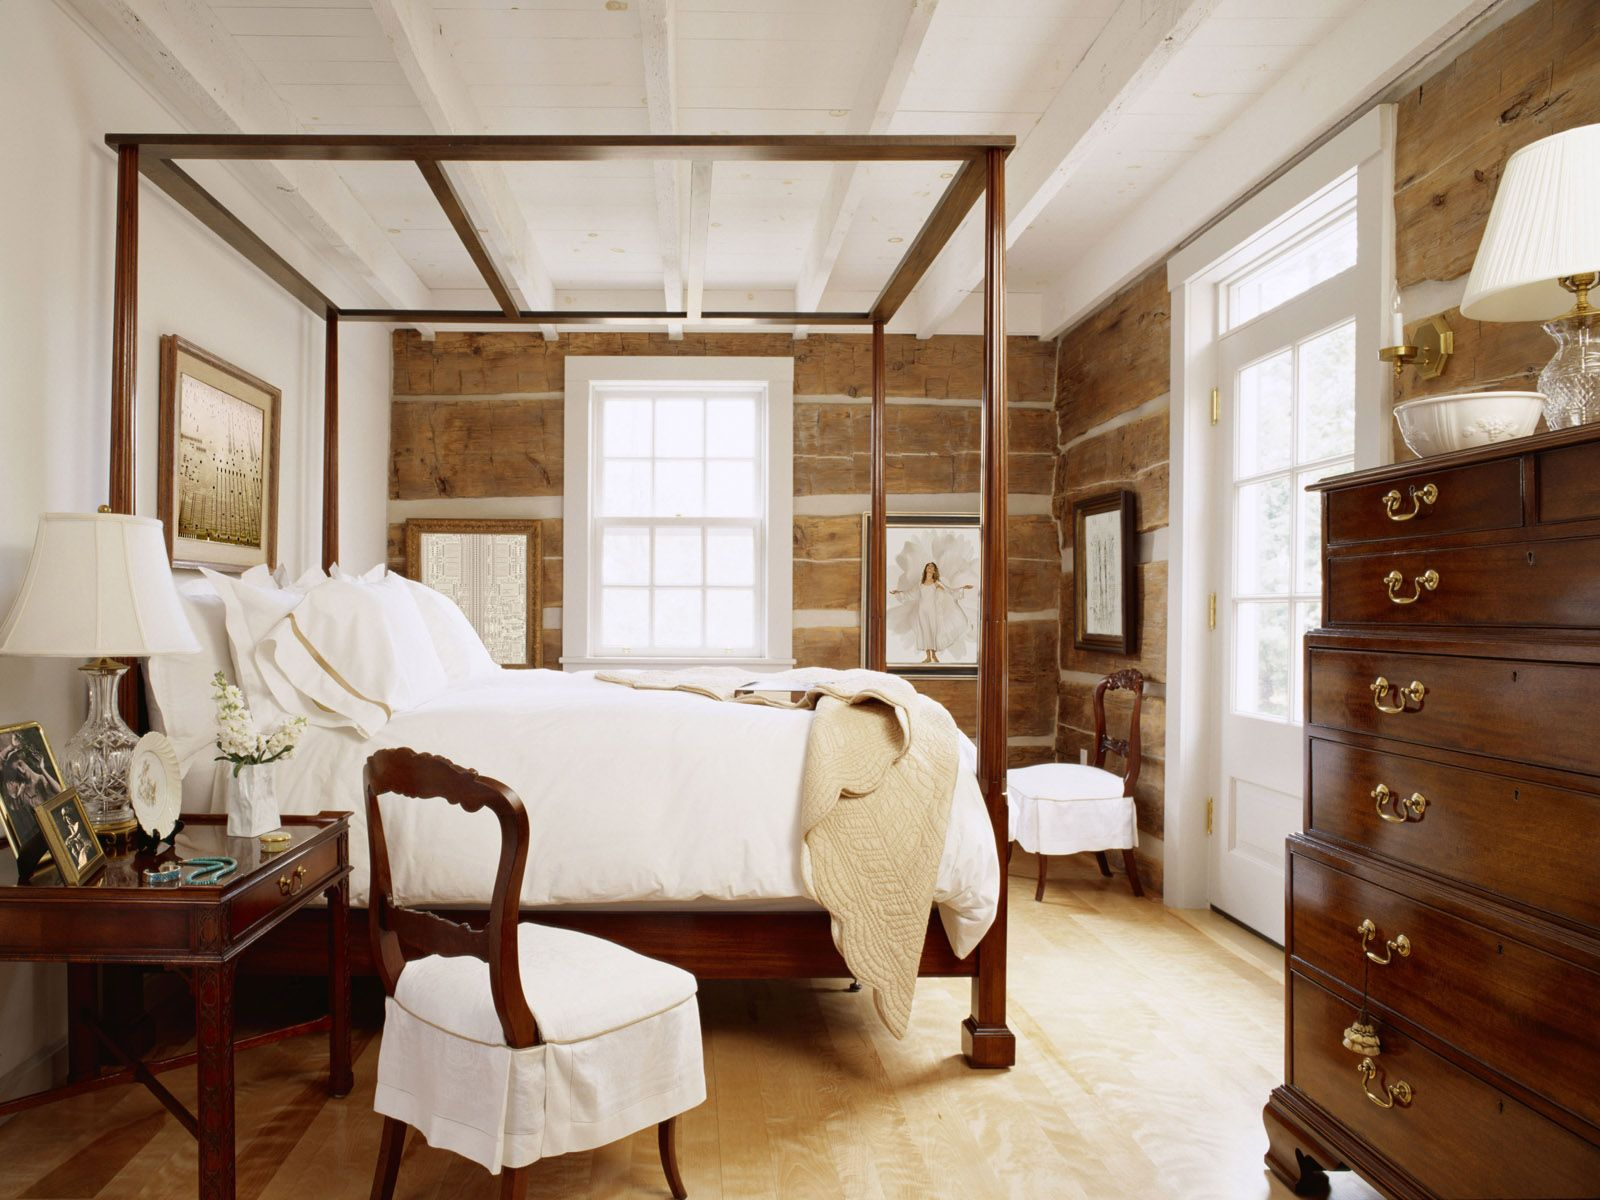 Charming Beautiful Classic Small Bedroom Interior Decor With Storage